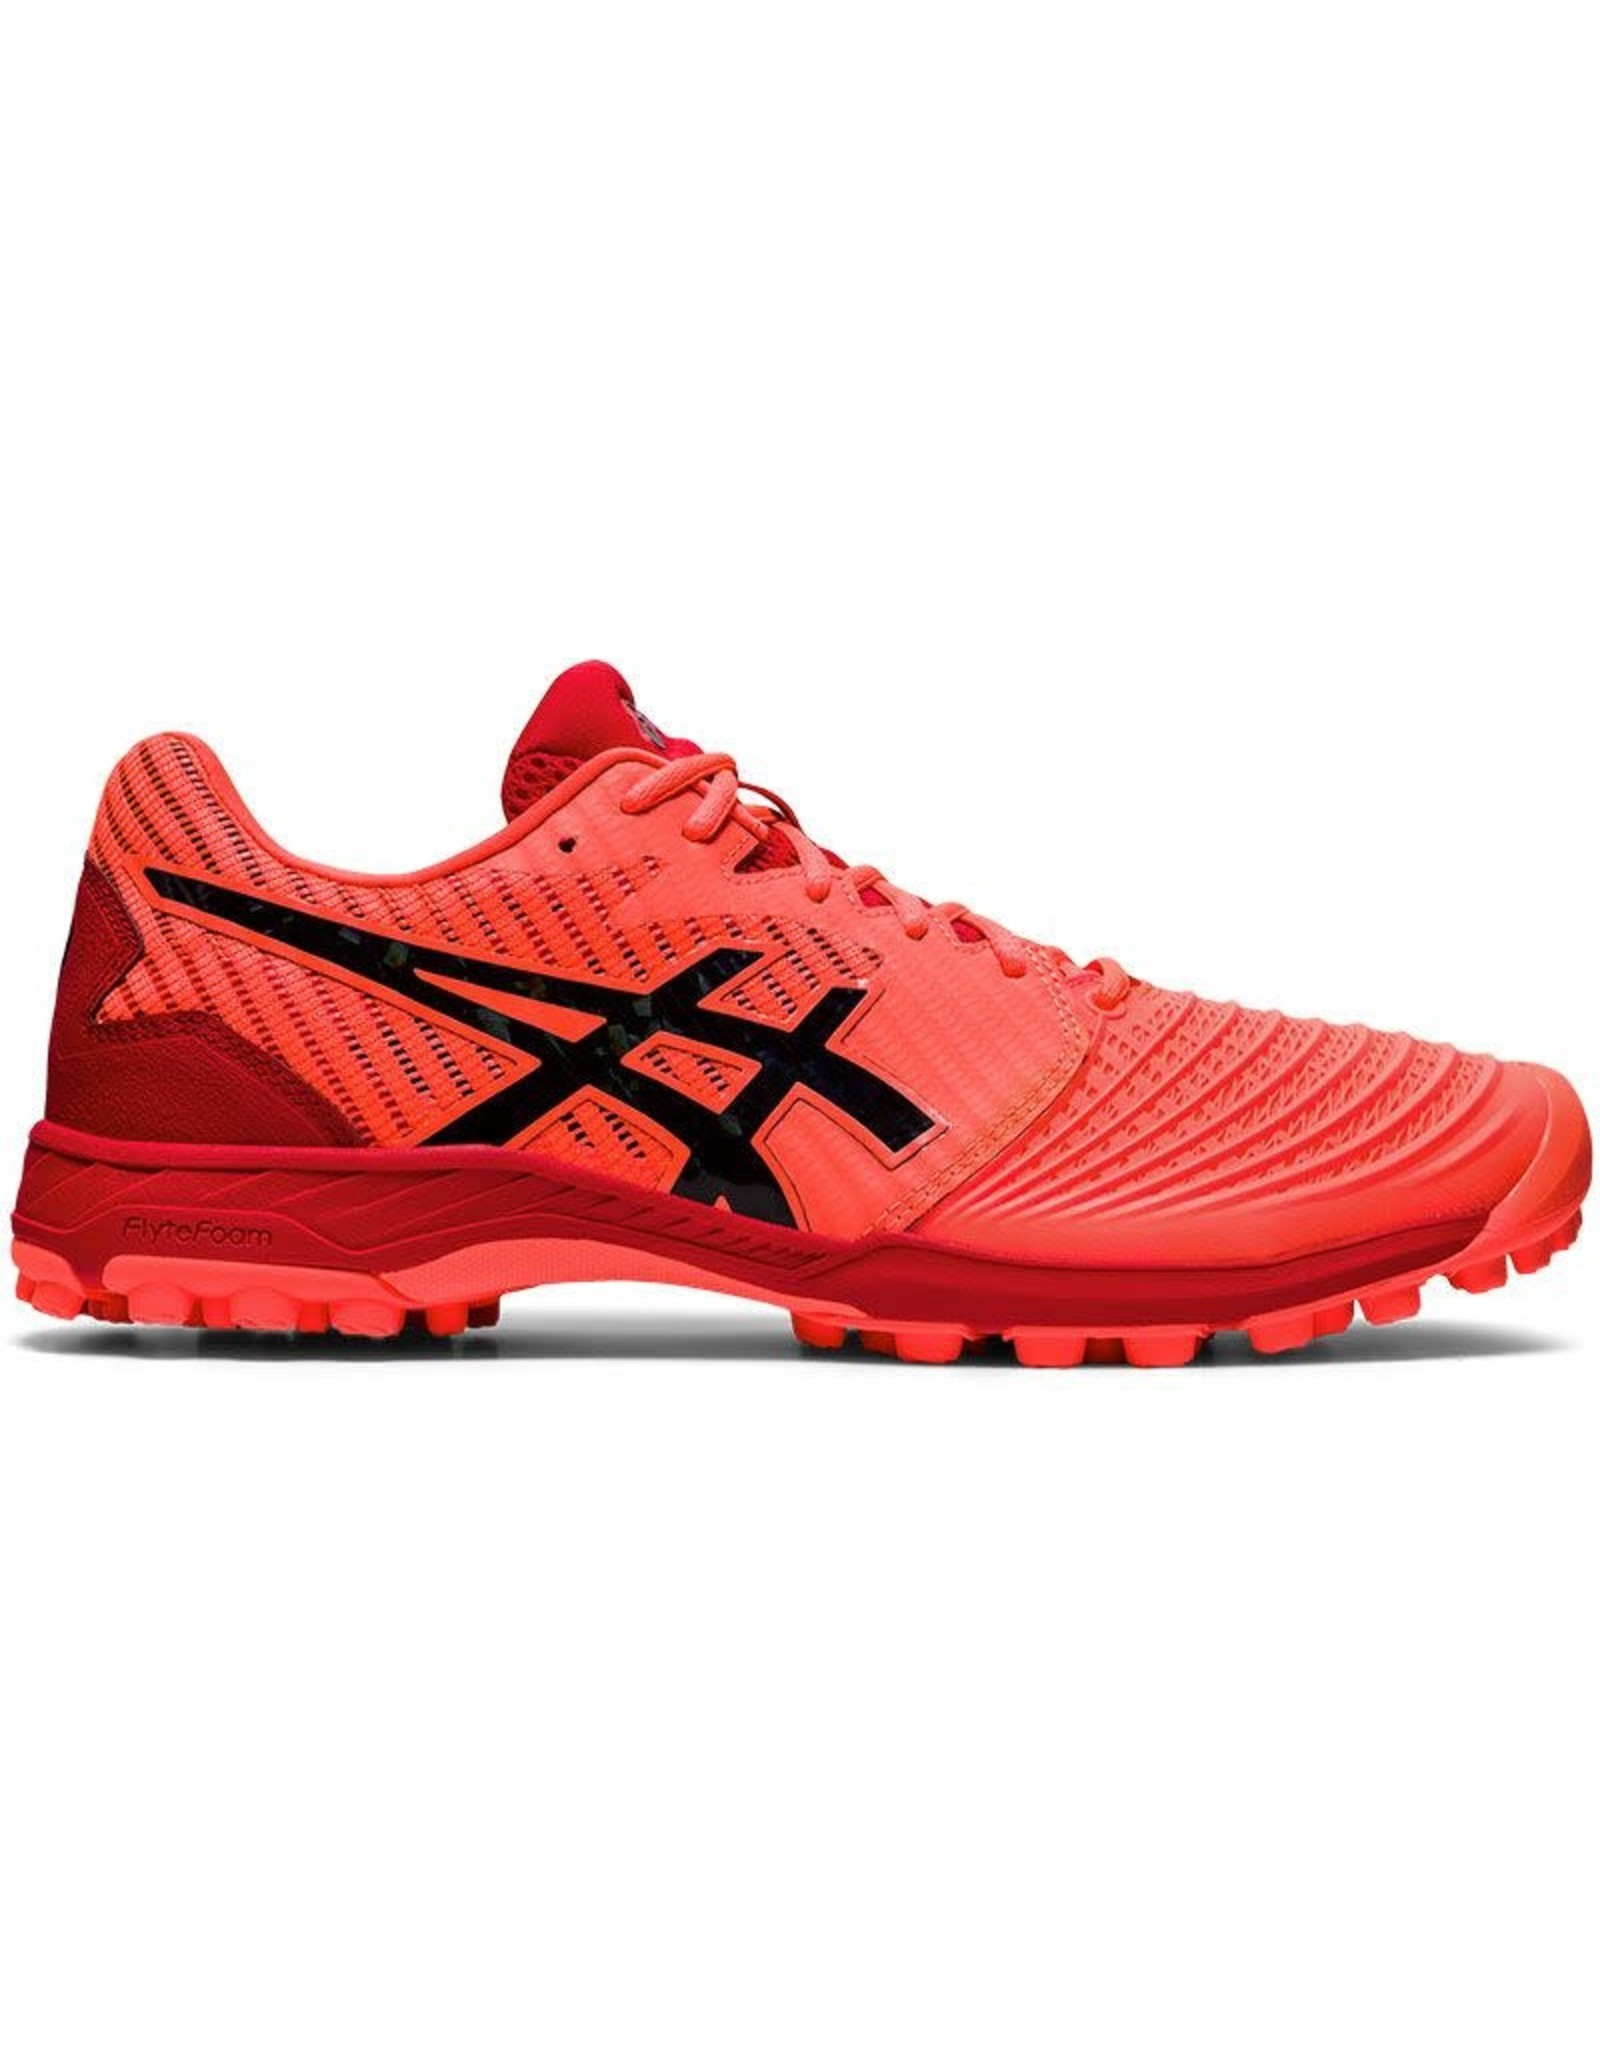 ASICS ASICS ULTIMATE FF SUNRISE RED LIMITED EDITION 20-21 WOMEN